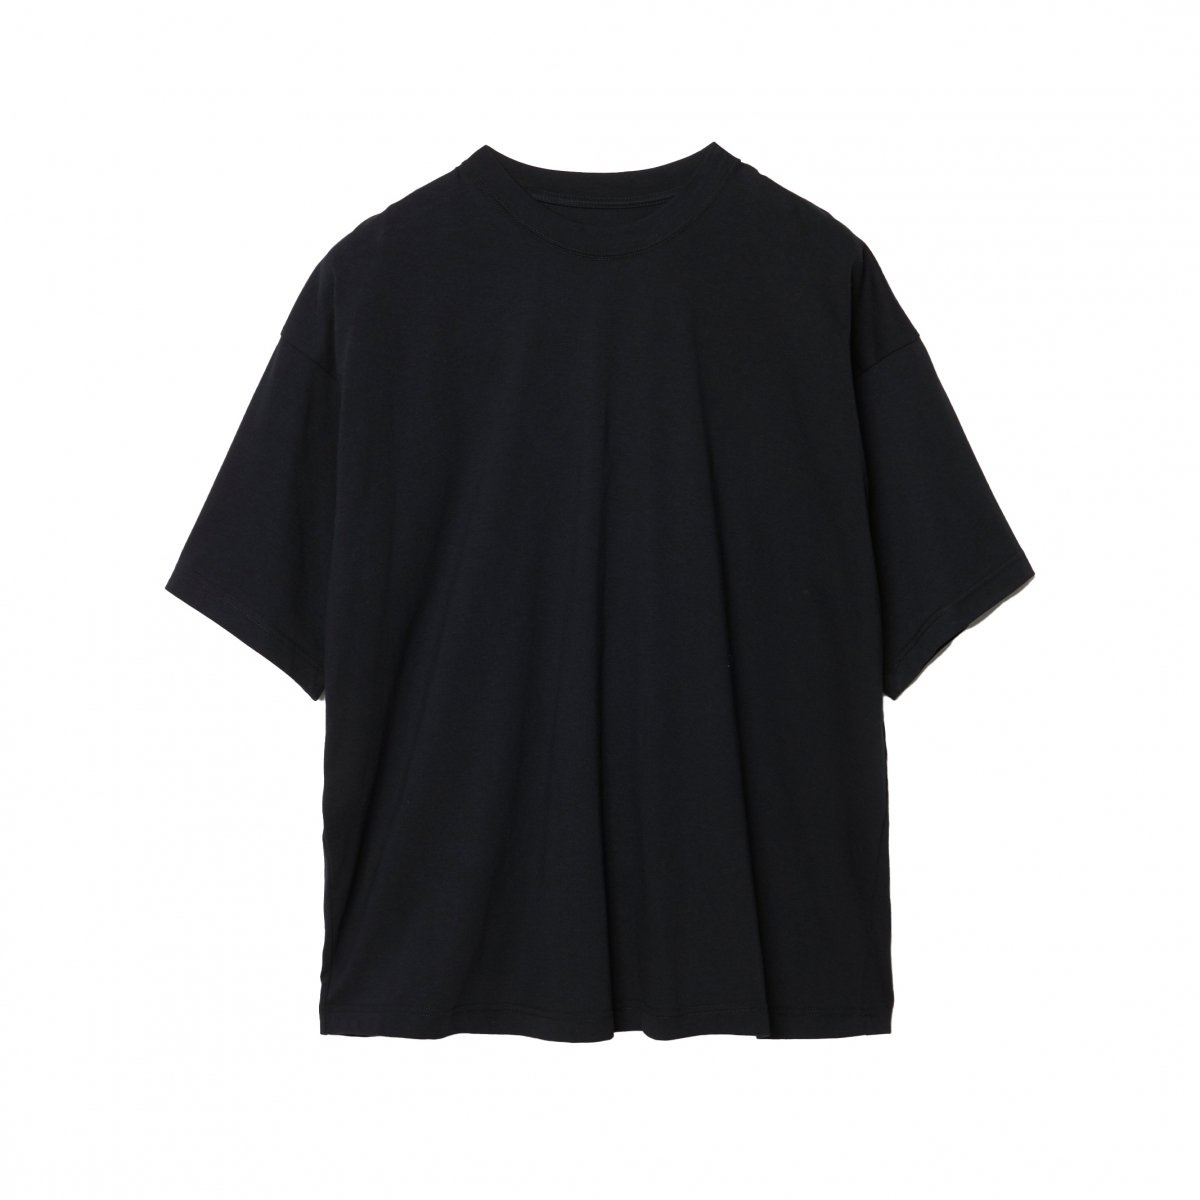 <img class='new_mark_img1' src='https://img.shop-pro.jp/img/new/icons5.gif' style='border:none;display:inline;margin:0px;padding:0px;width:auto;' />EXTRA STAPLE COTTON SHORT SLEEVE TEE / BLACK